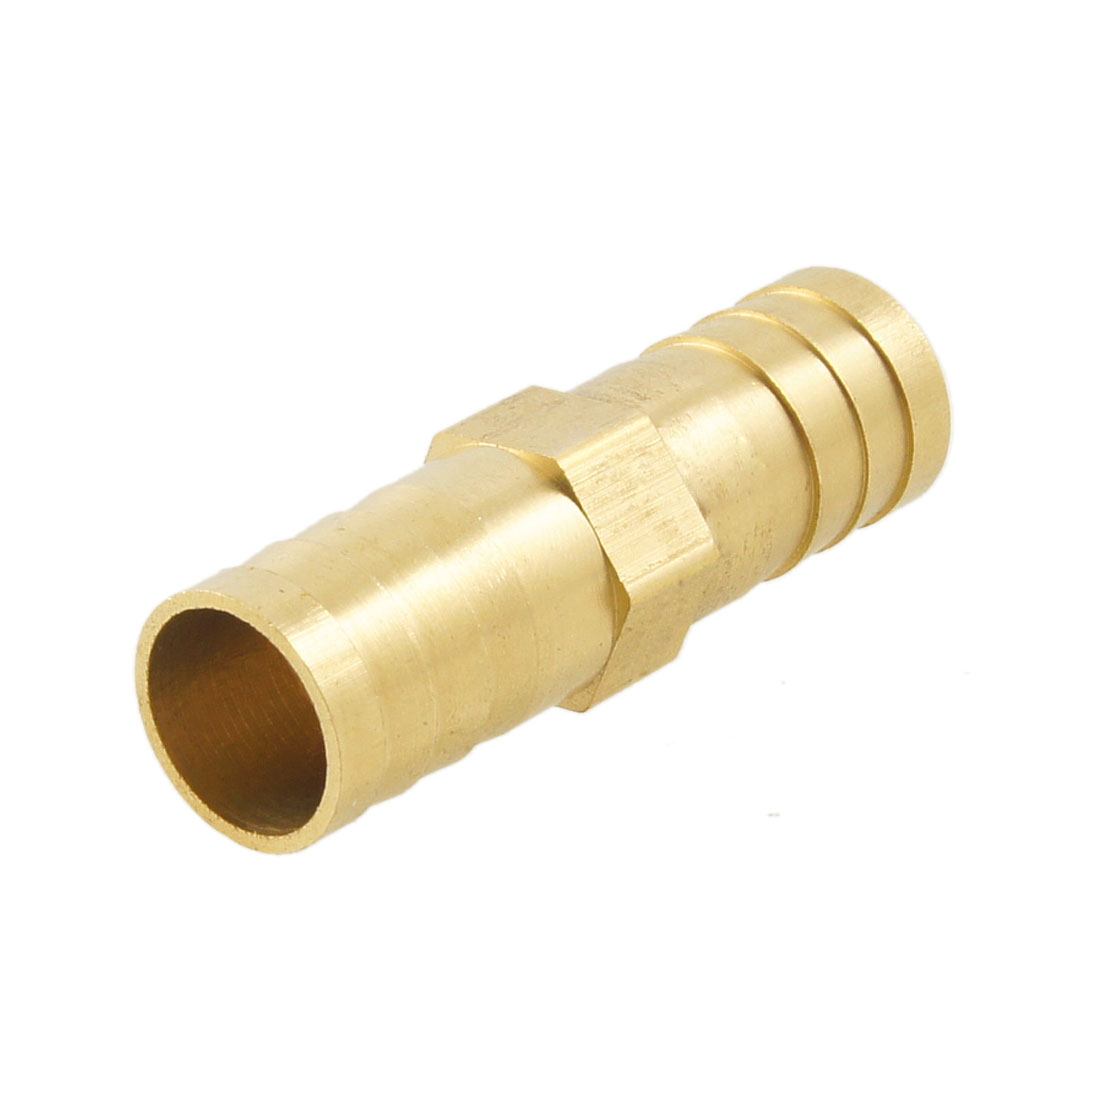 Brass Equal Straight Barb Connector Tube Fitting for Dual 14mm Inside Dia Hoses